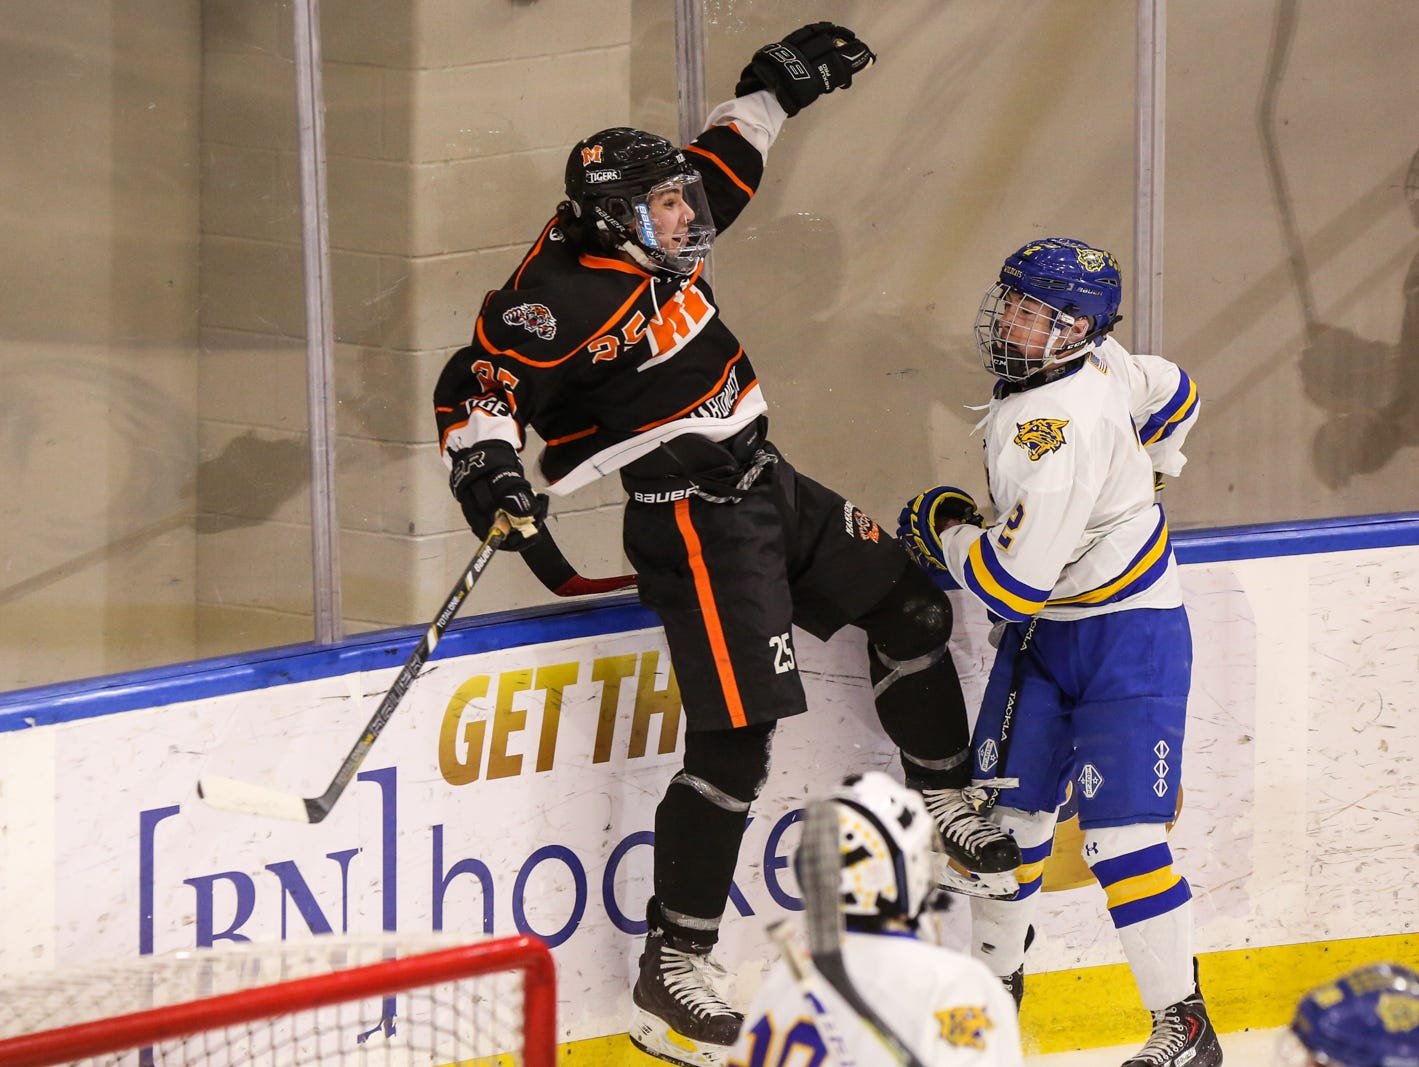 Mamaroneck's Michael Carducci (25) celebrates his goal as West Genesee's Conor Bartlett (2) reacts in the first period. Mamaroneck defeated West Genesee 1-0 and won the NYSPHSAA Division 1 HarborCenter in Buffalo, NY.